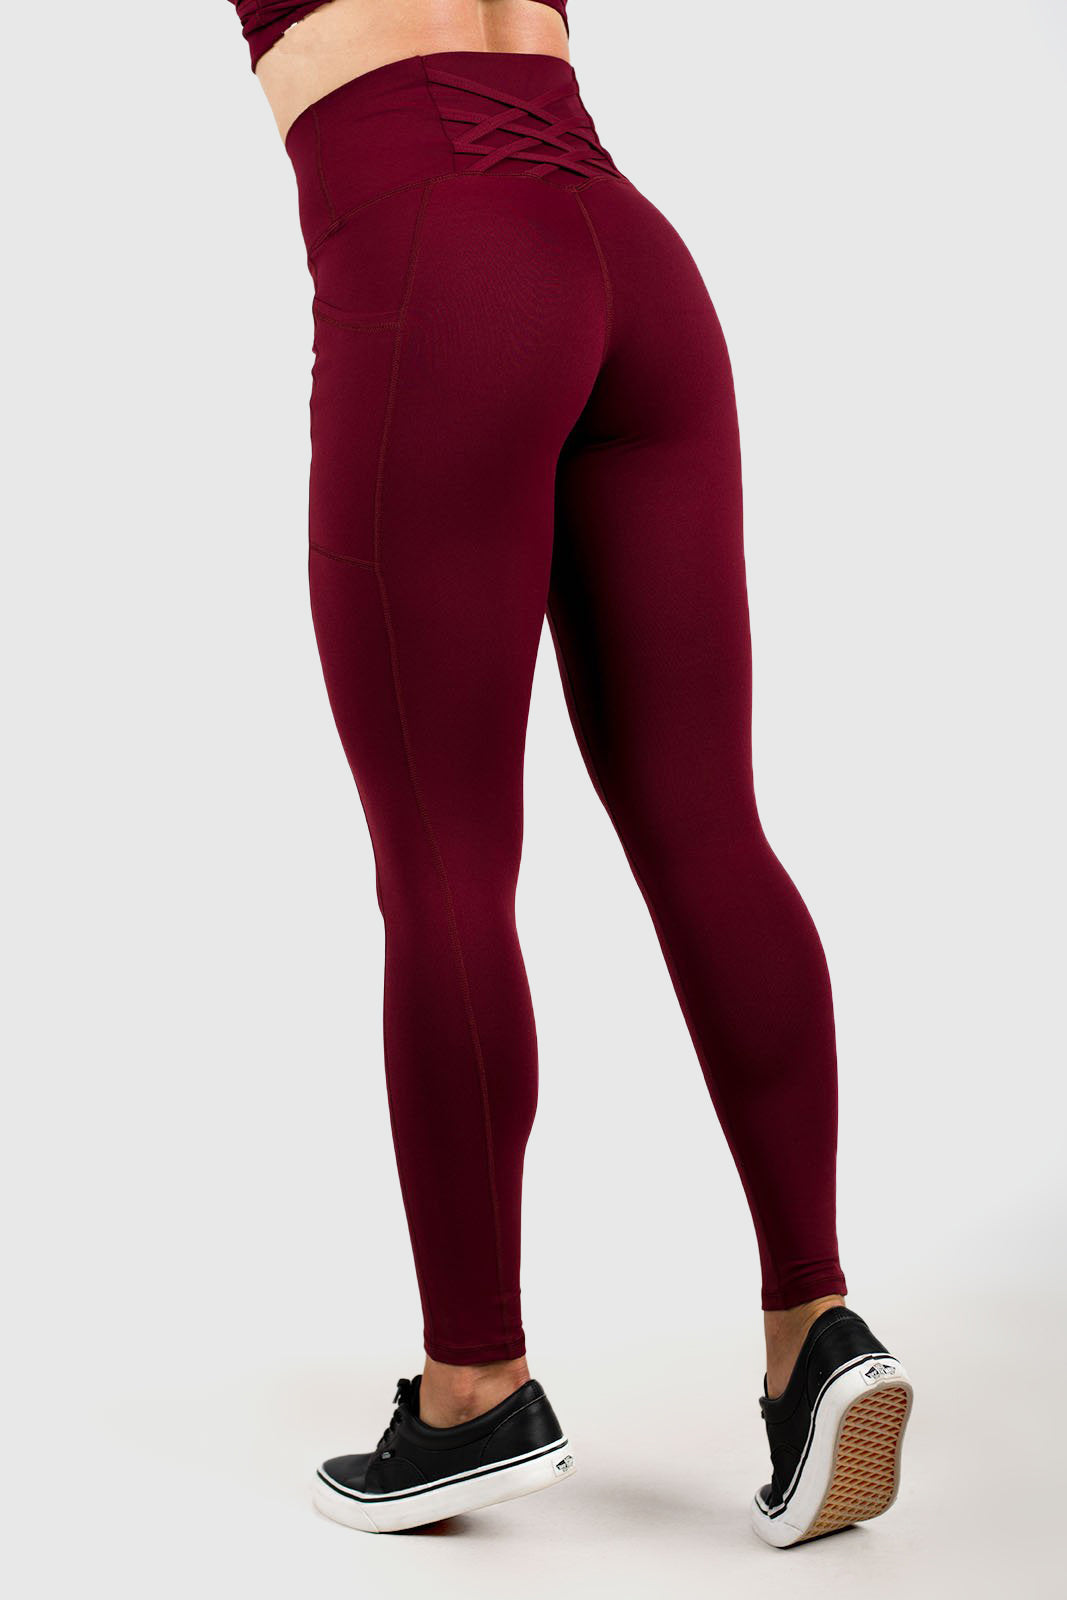 a139e911cc6d4 Strappy Highwaisted Leggings - Burgundy – Twotags